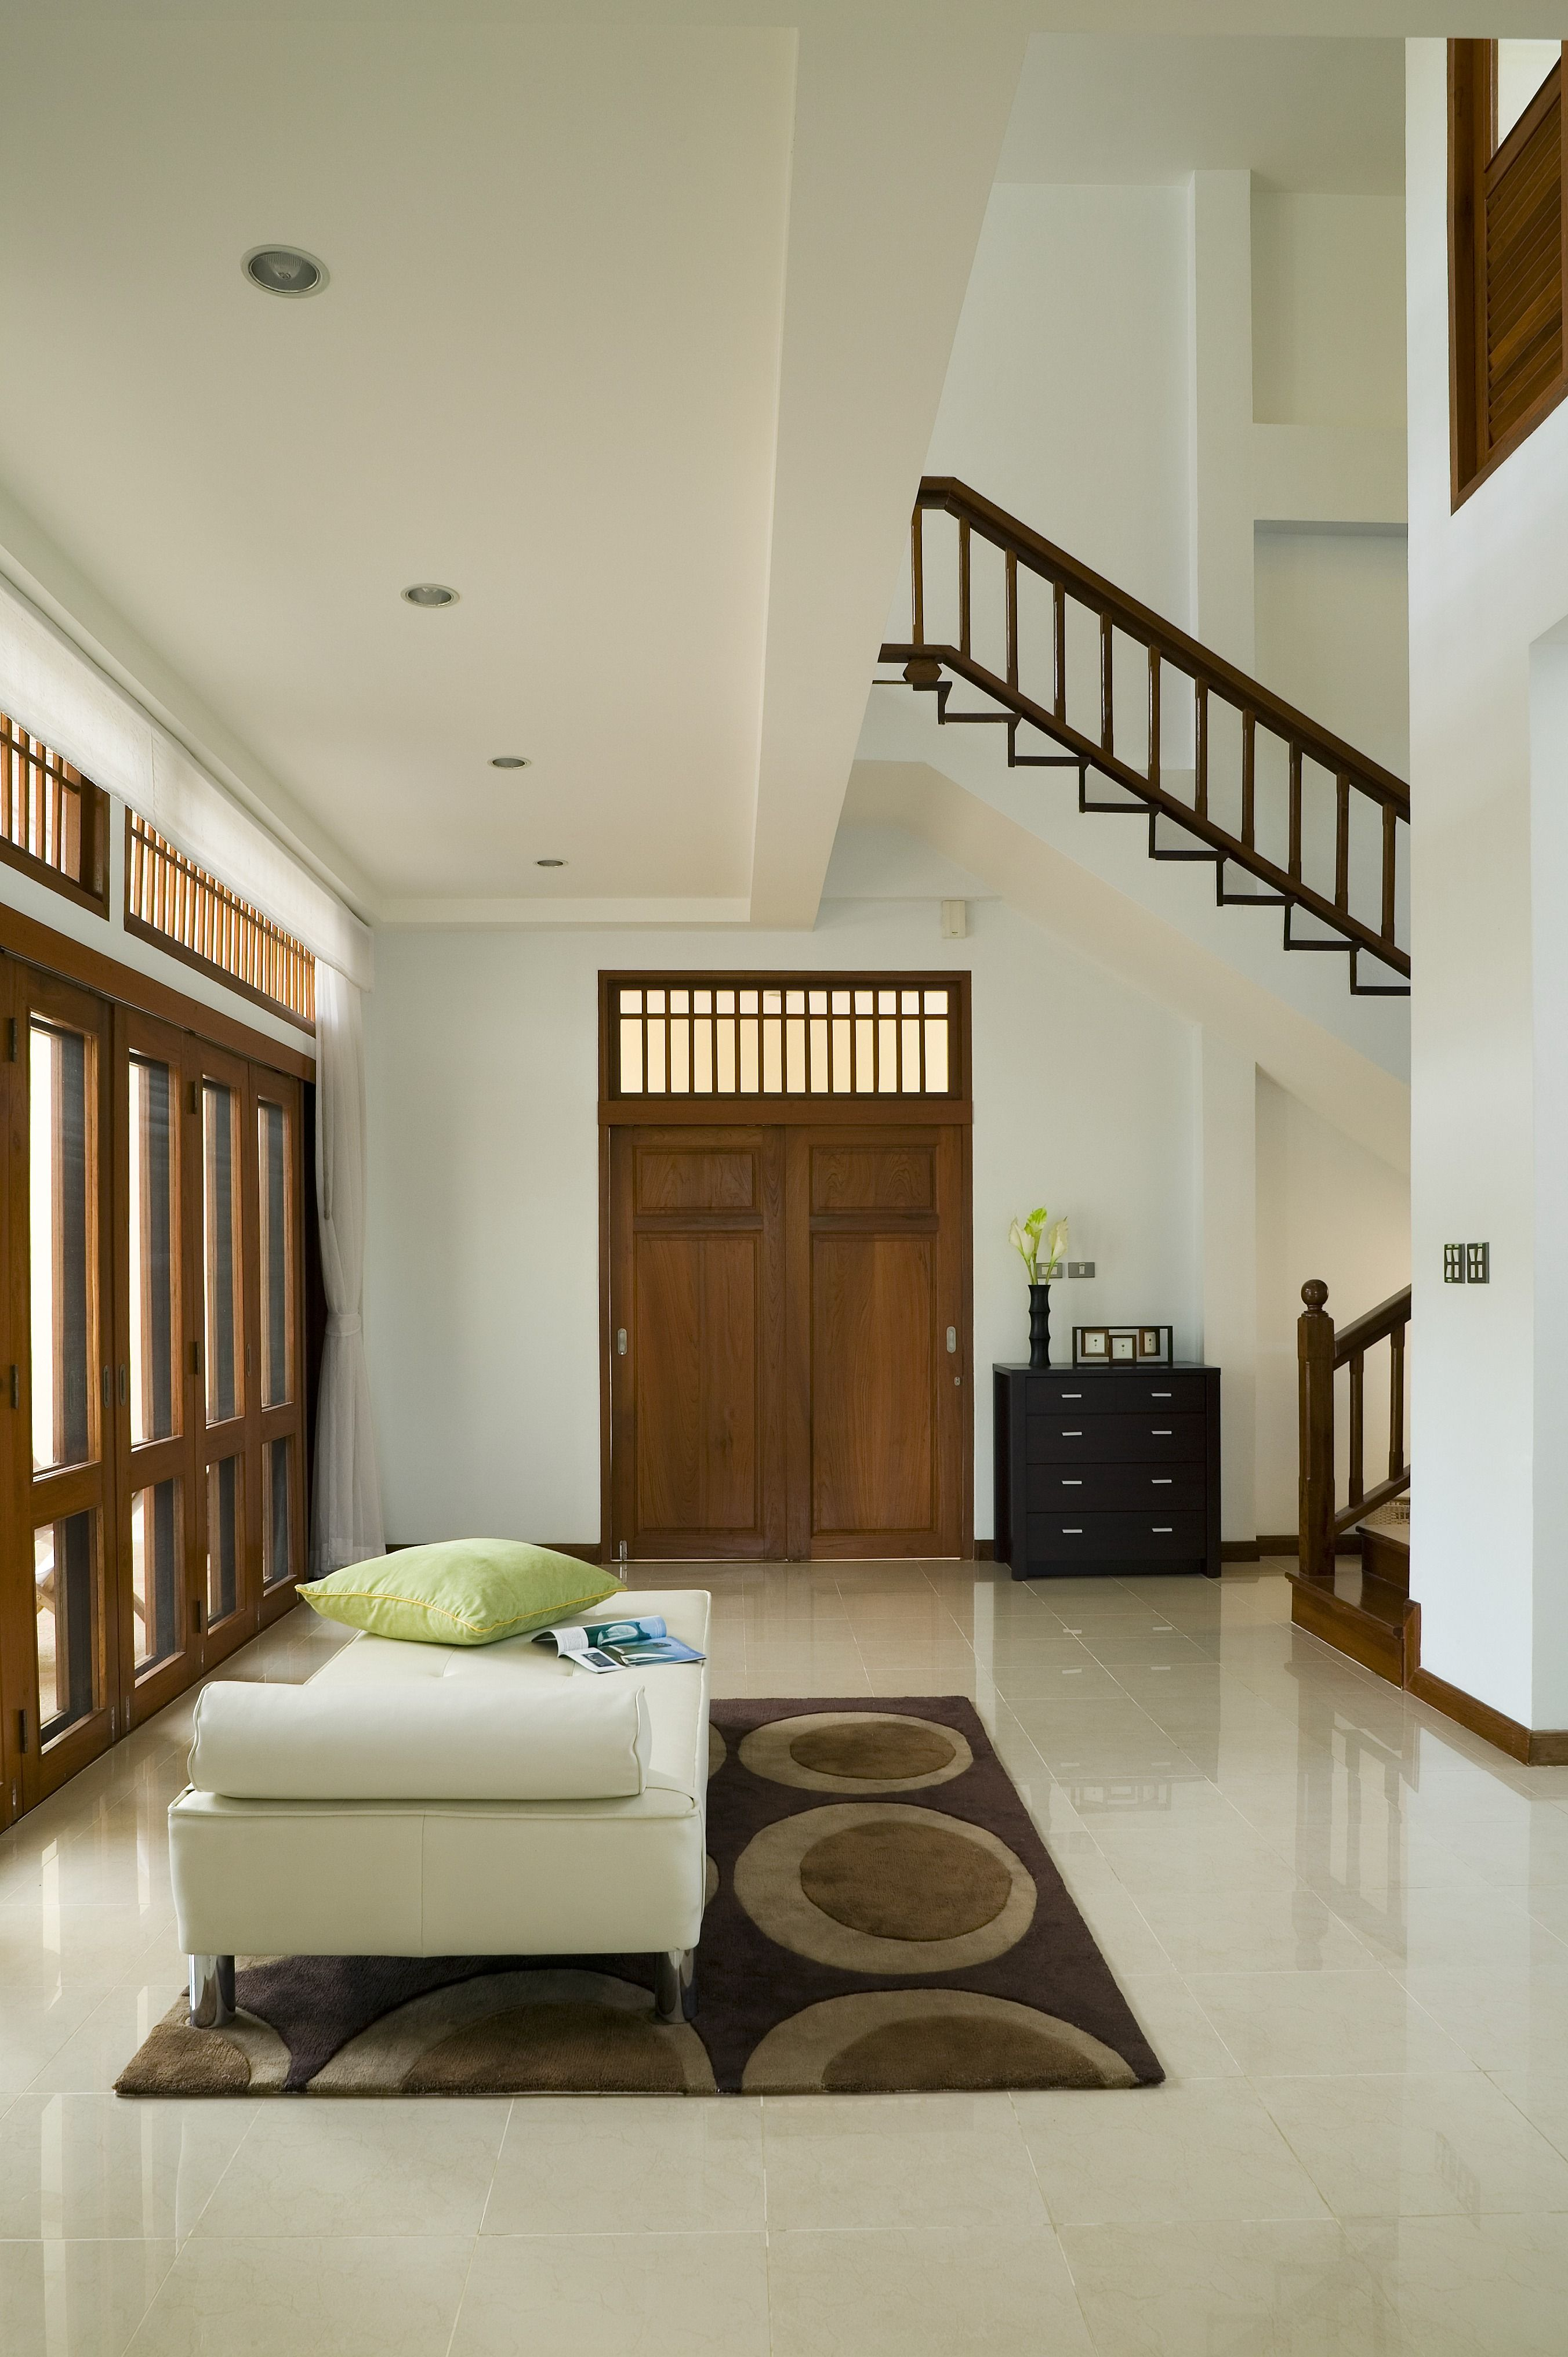 How Much Does New Flooring Cost? Flooring cost, Flooring